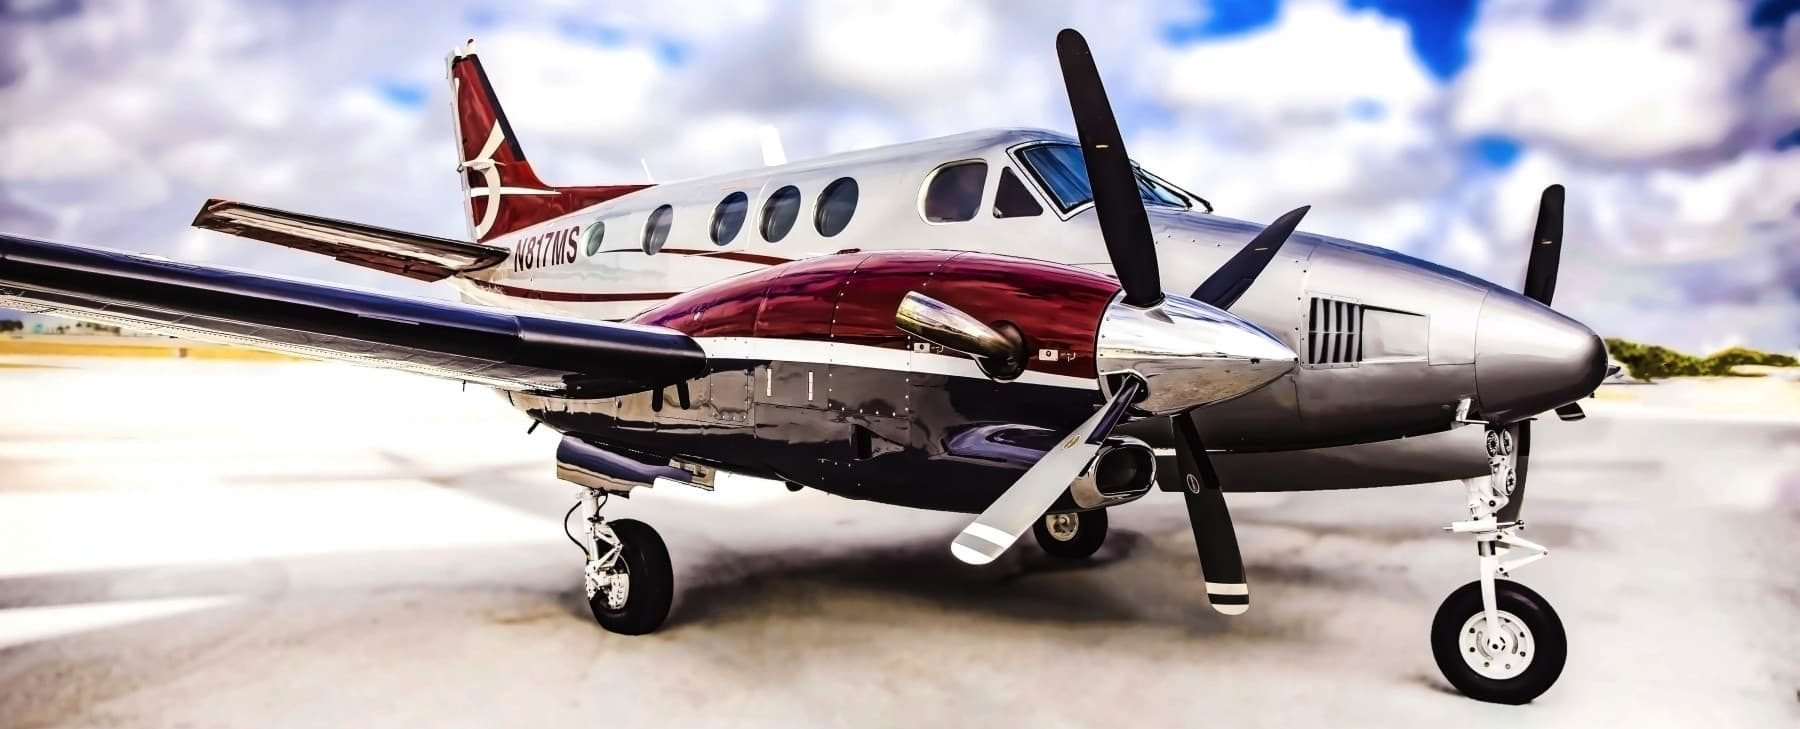 Beechcraft King Air C90 series